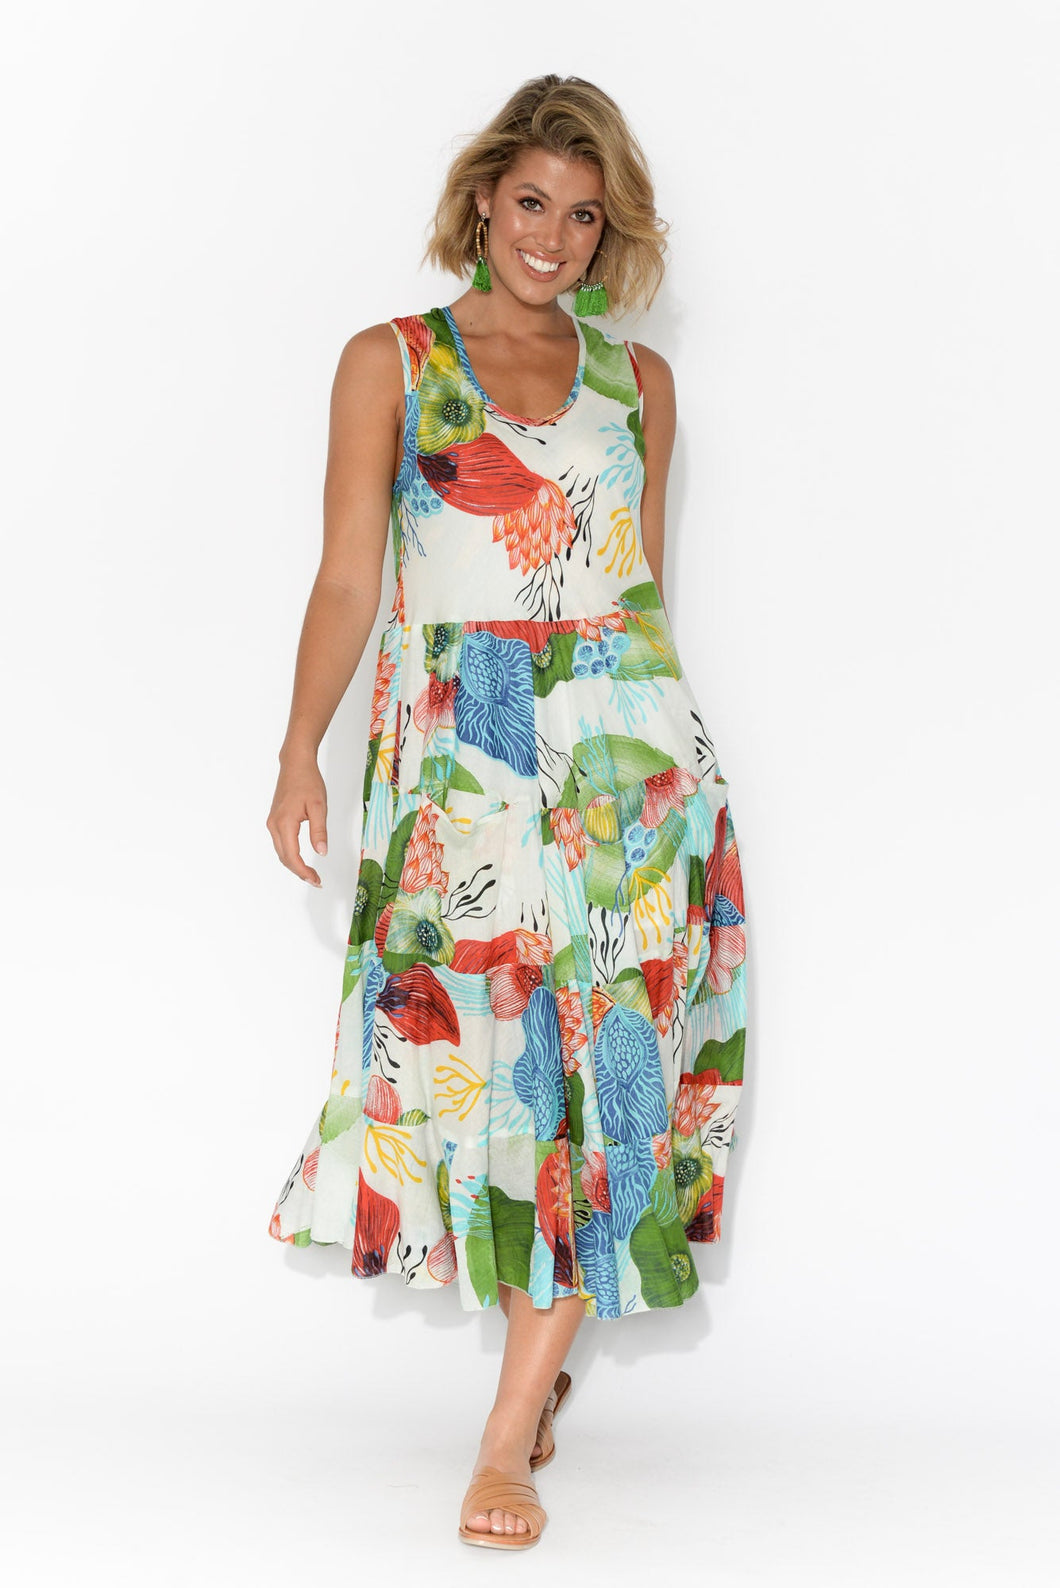 Daydream Bright Floral Cotton Dress